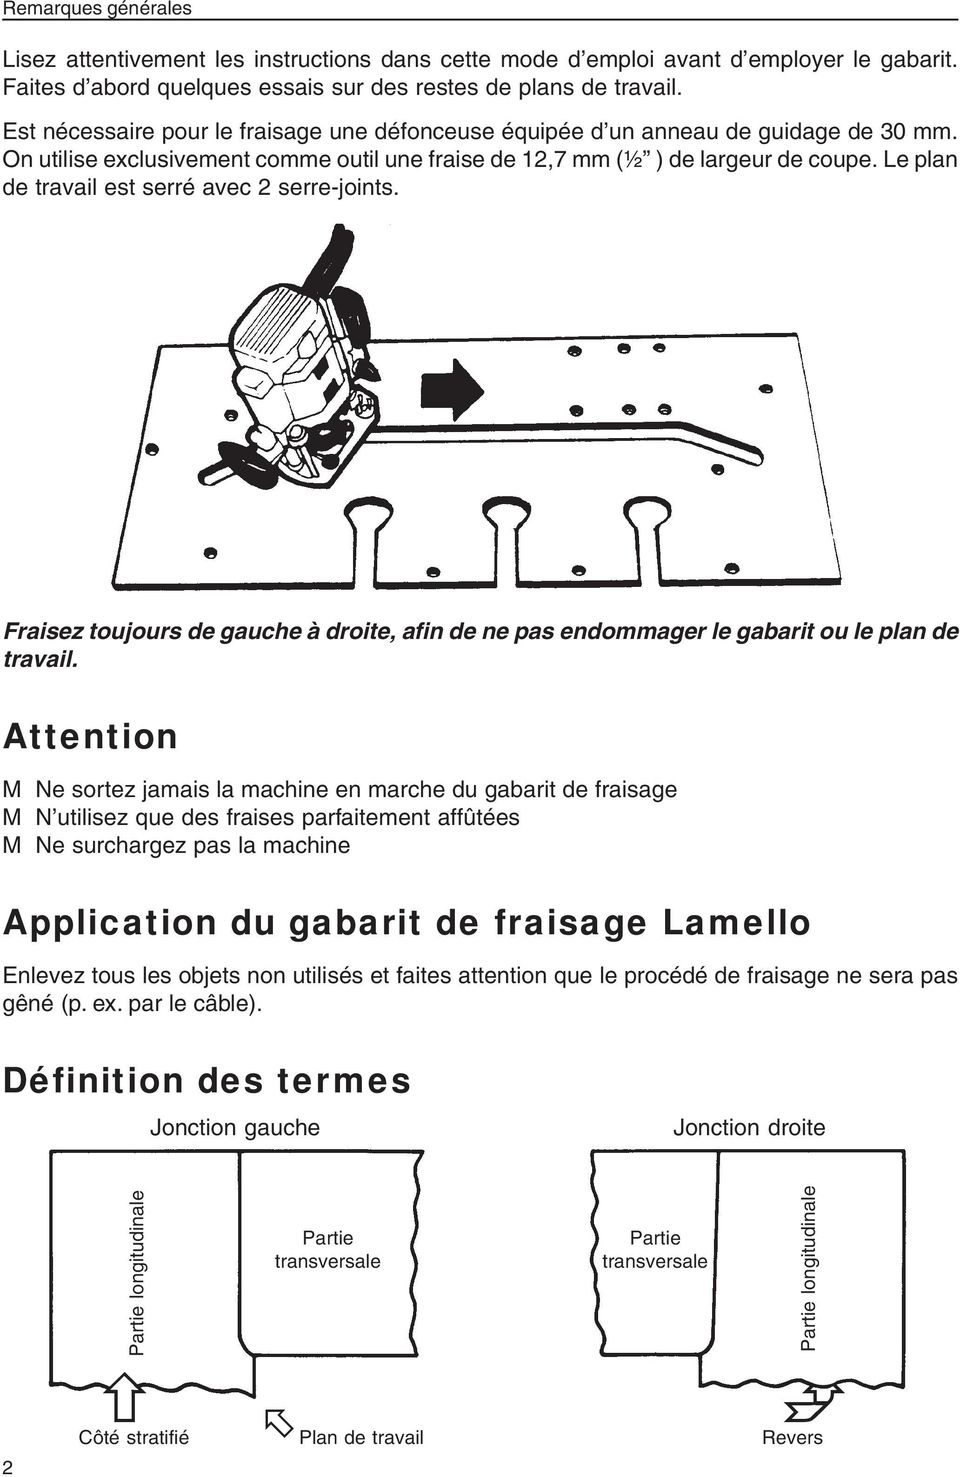 gabarit de fraisage lamello pdf. Black Bedroom Furniture Sets. Home Design Ideas